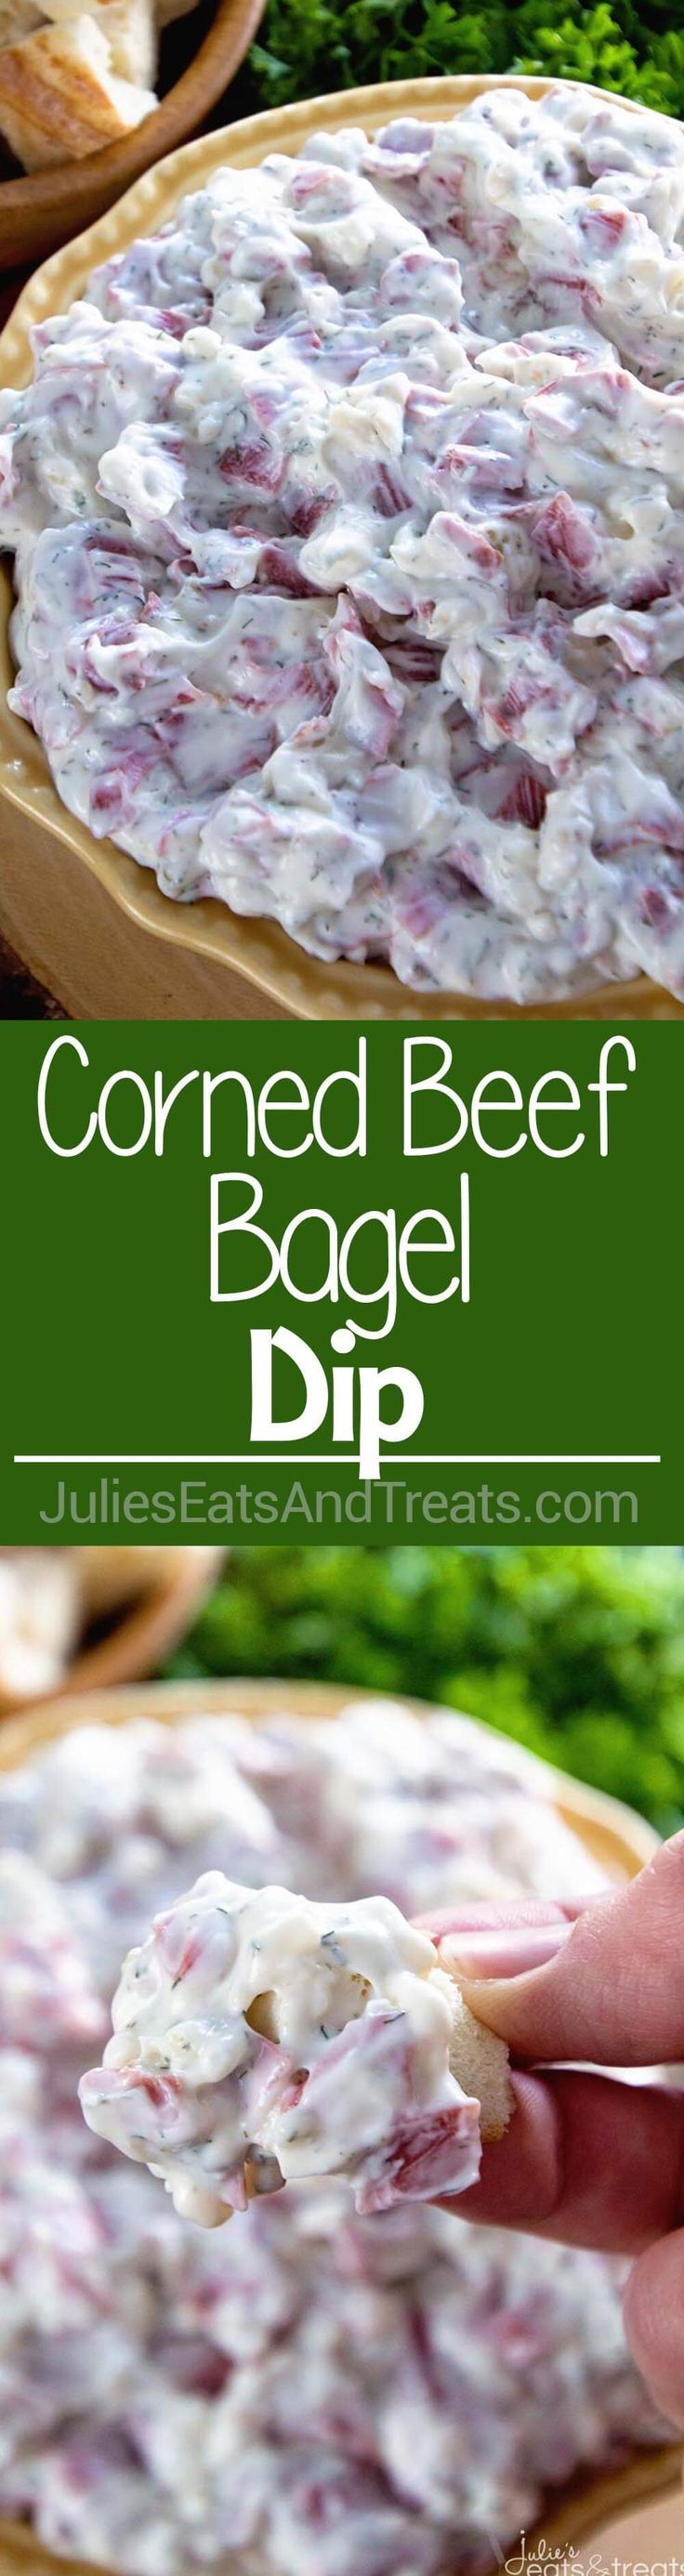 Corned Beef Bagel Dip ~ Quick and Easy Dip Perfect for Entertaining! Easy Appetizer to Serve When Hosting Your Next Party! via /julieseats/